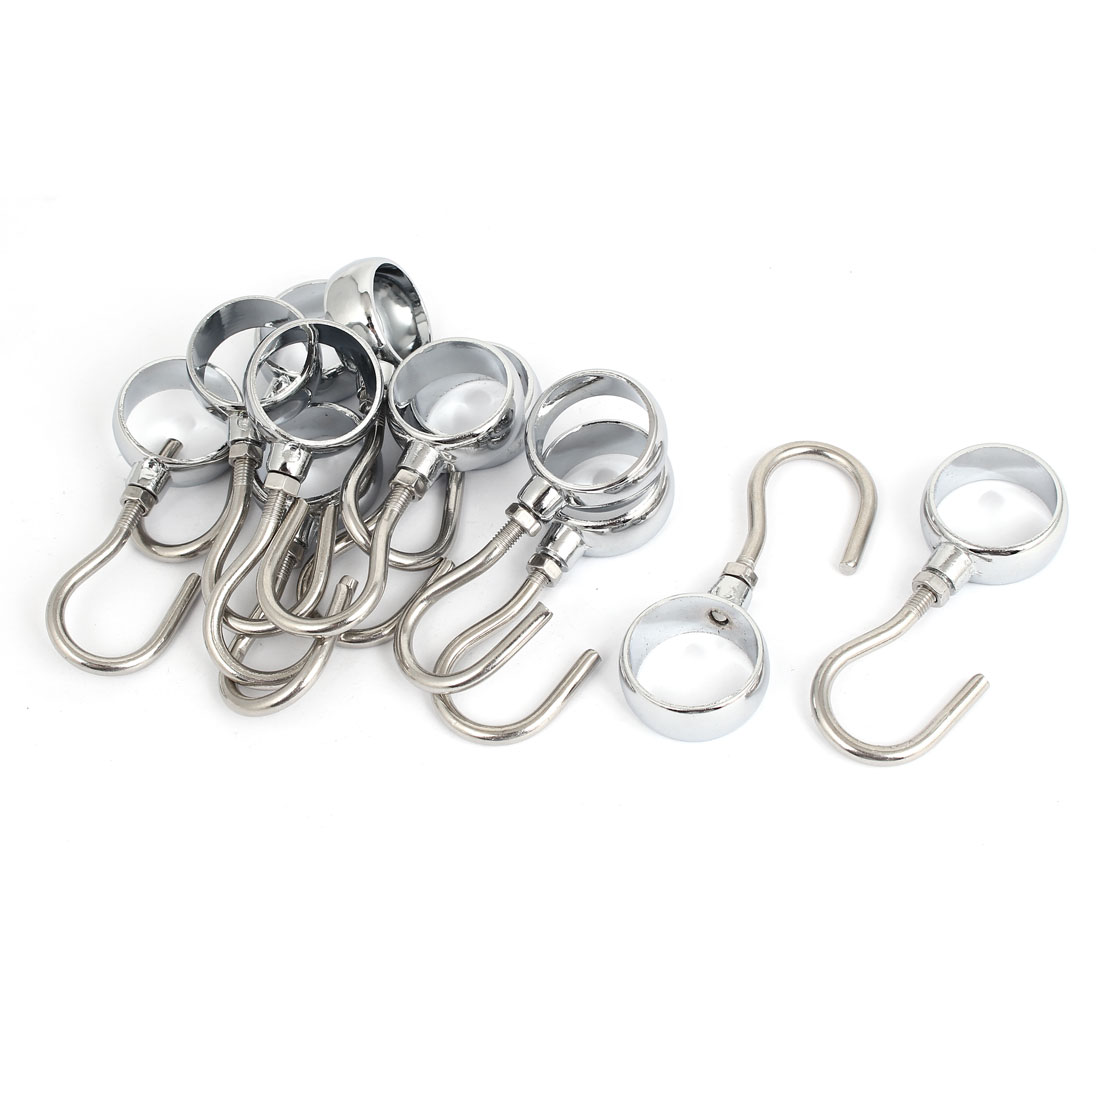 20pcs Wardrobe Bathroom 25mm Diameter Clothes Hanging Tube Rod Hooks Hangers